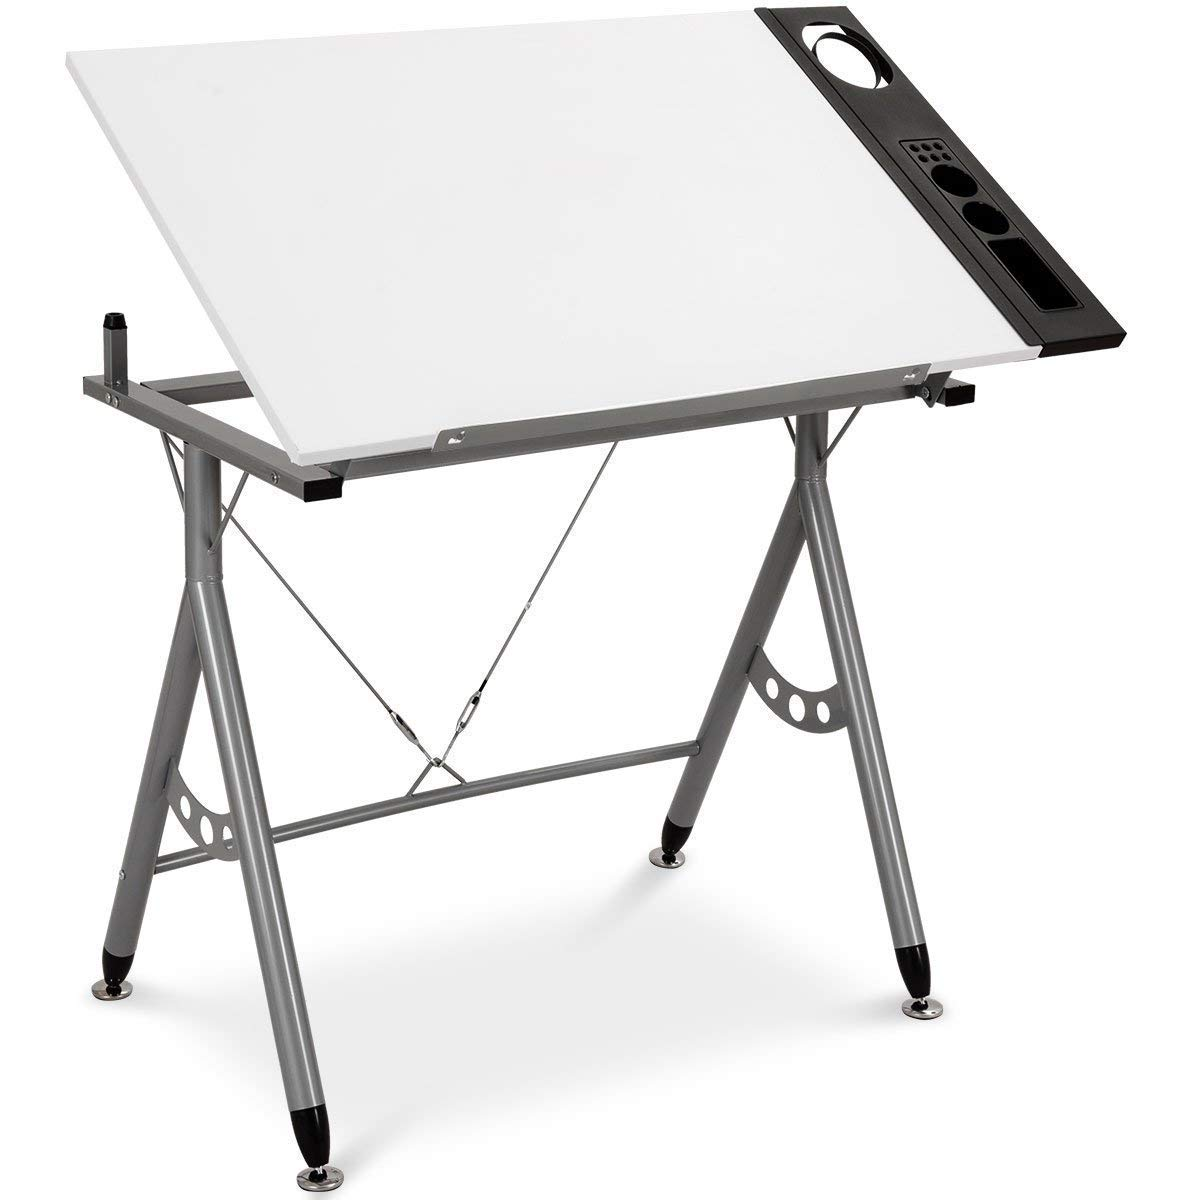 Tangkula Adjustable Drafting Table Art & Craft Drawing Desk Folding with Side Tray White by Tangkula